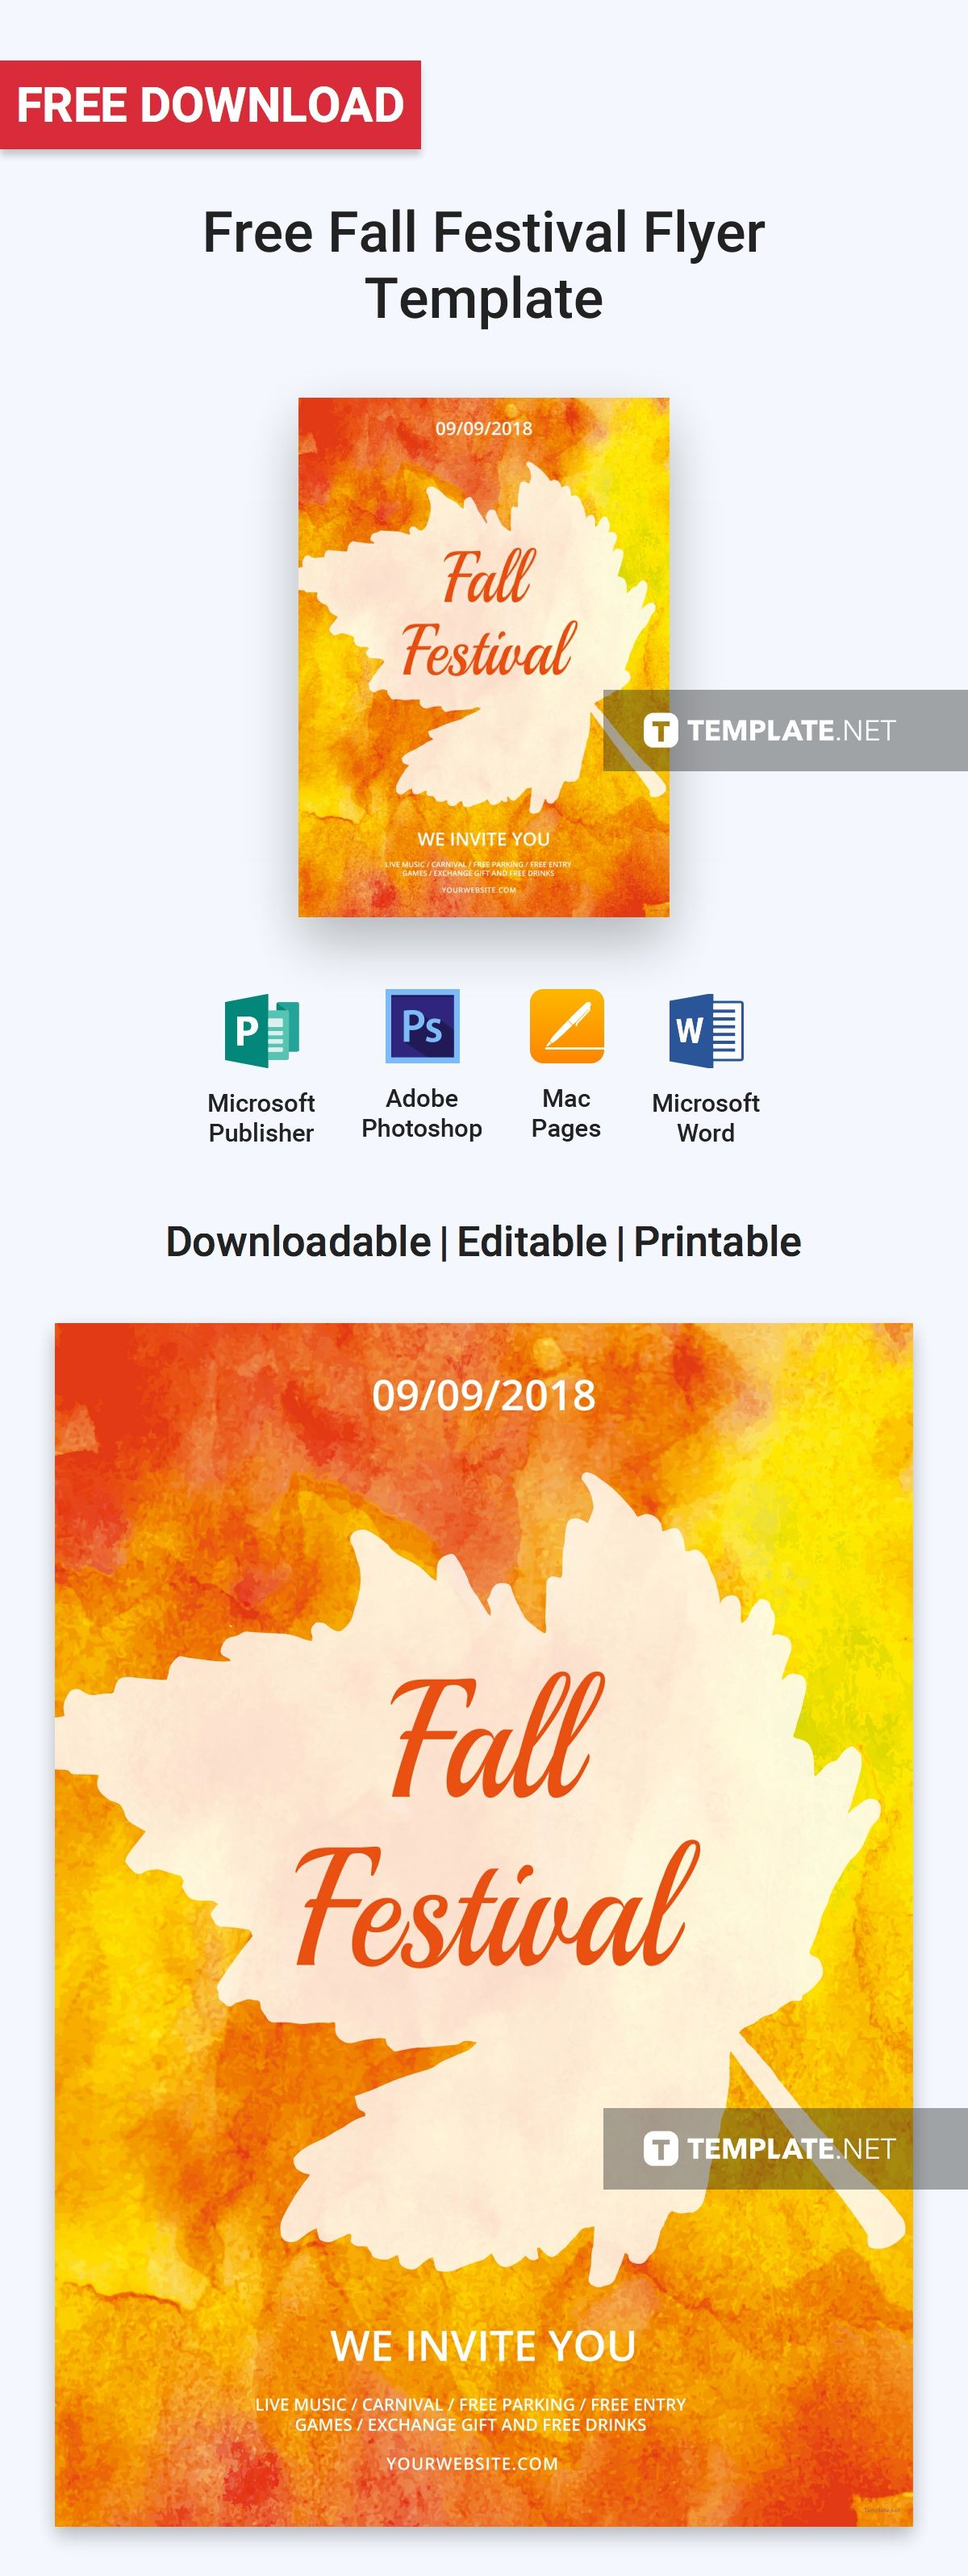 free fall festival flyer flyer templates designs 2019 flyer